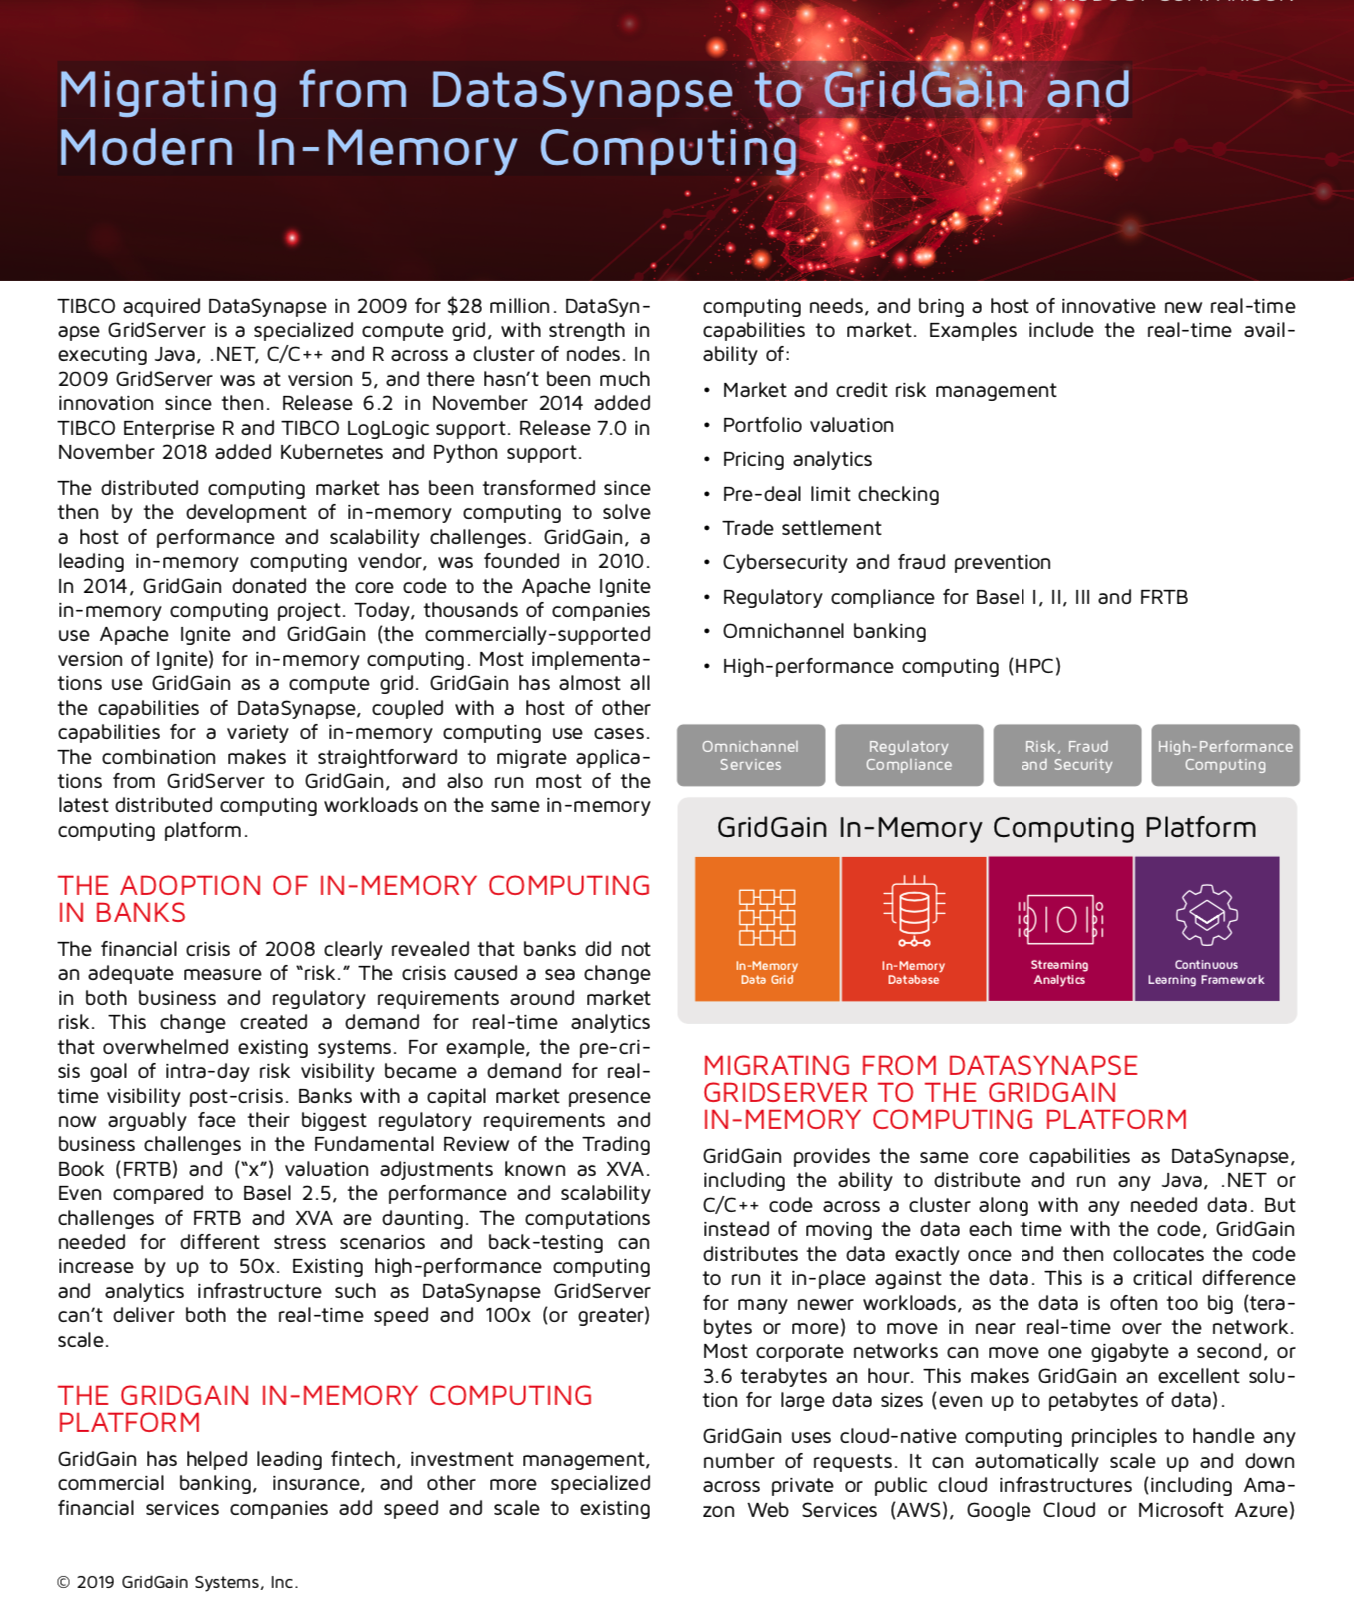 Migrating from DataSynapse to GridGain and Modern In-Memory Computing